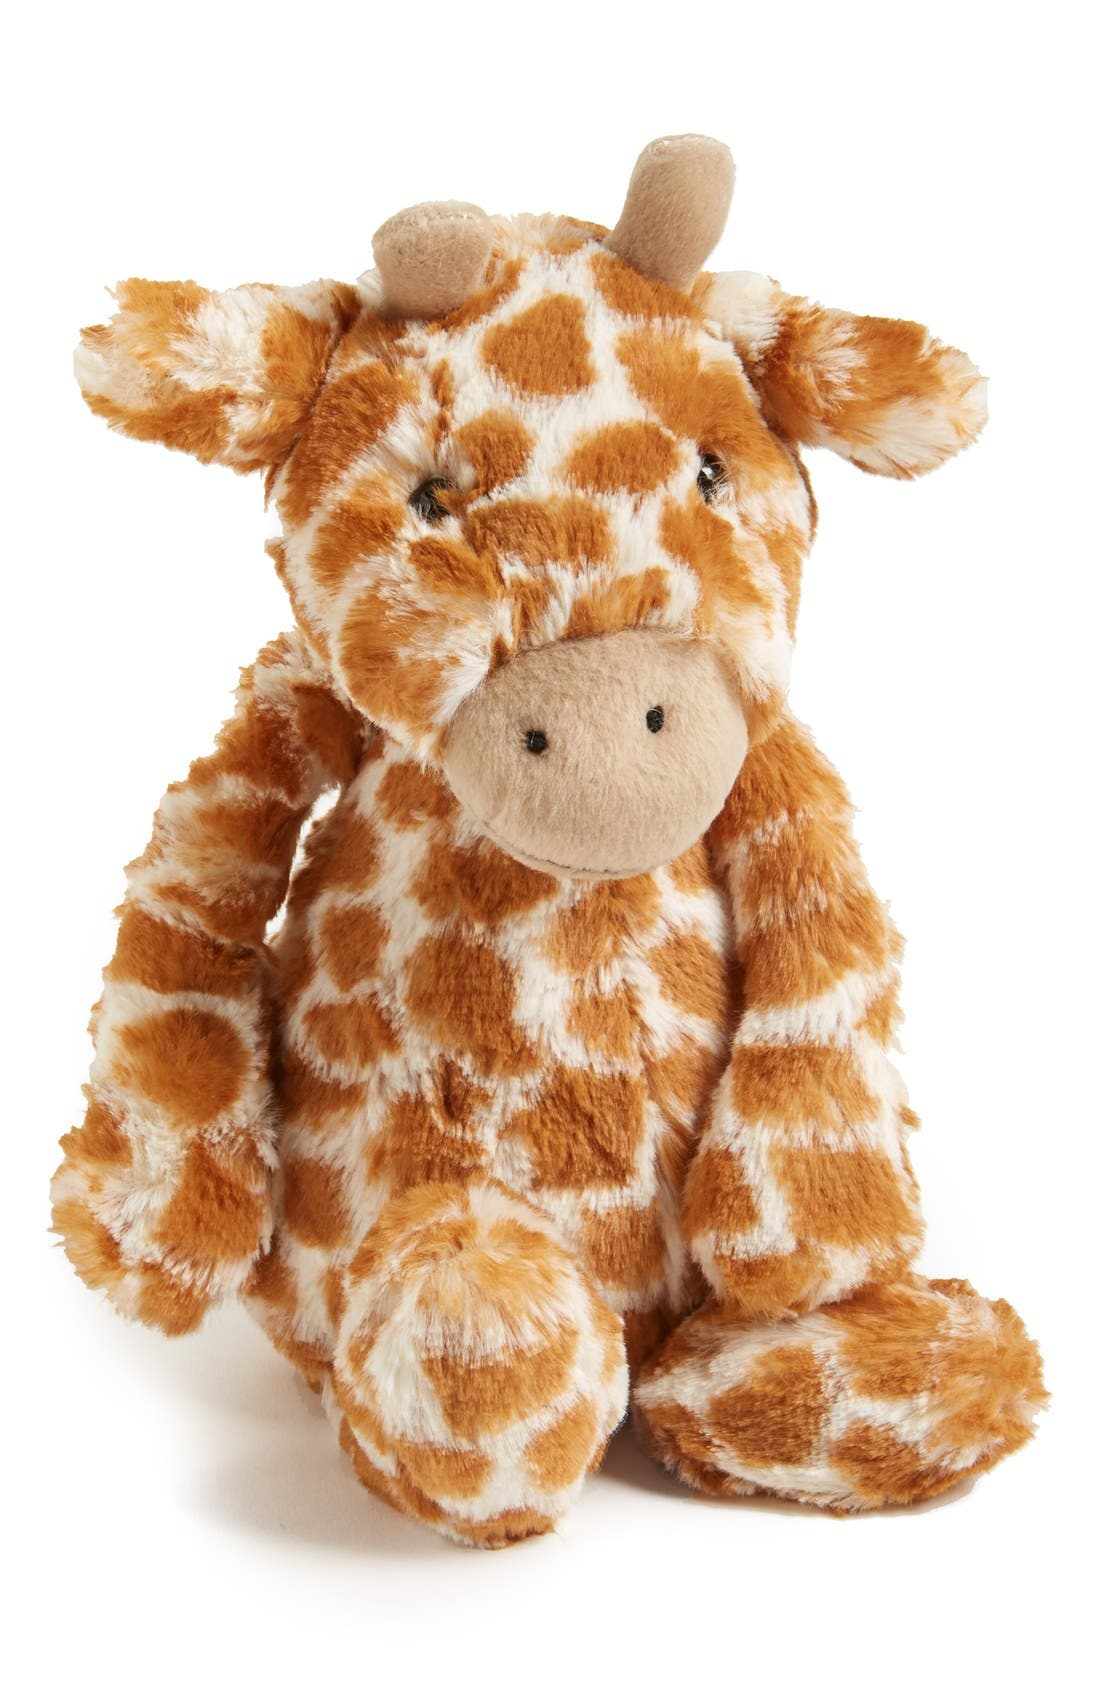 Main Image - Jellycat Bashful Giraffe Stuffed Animal